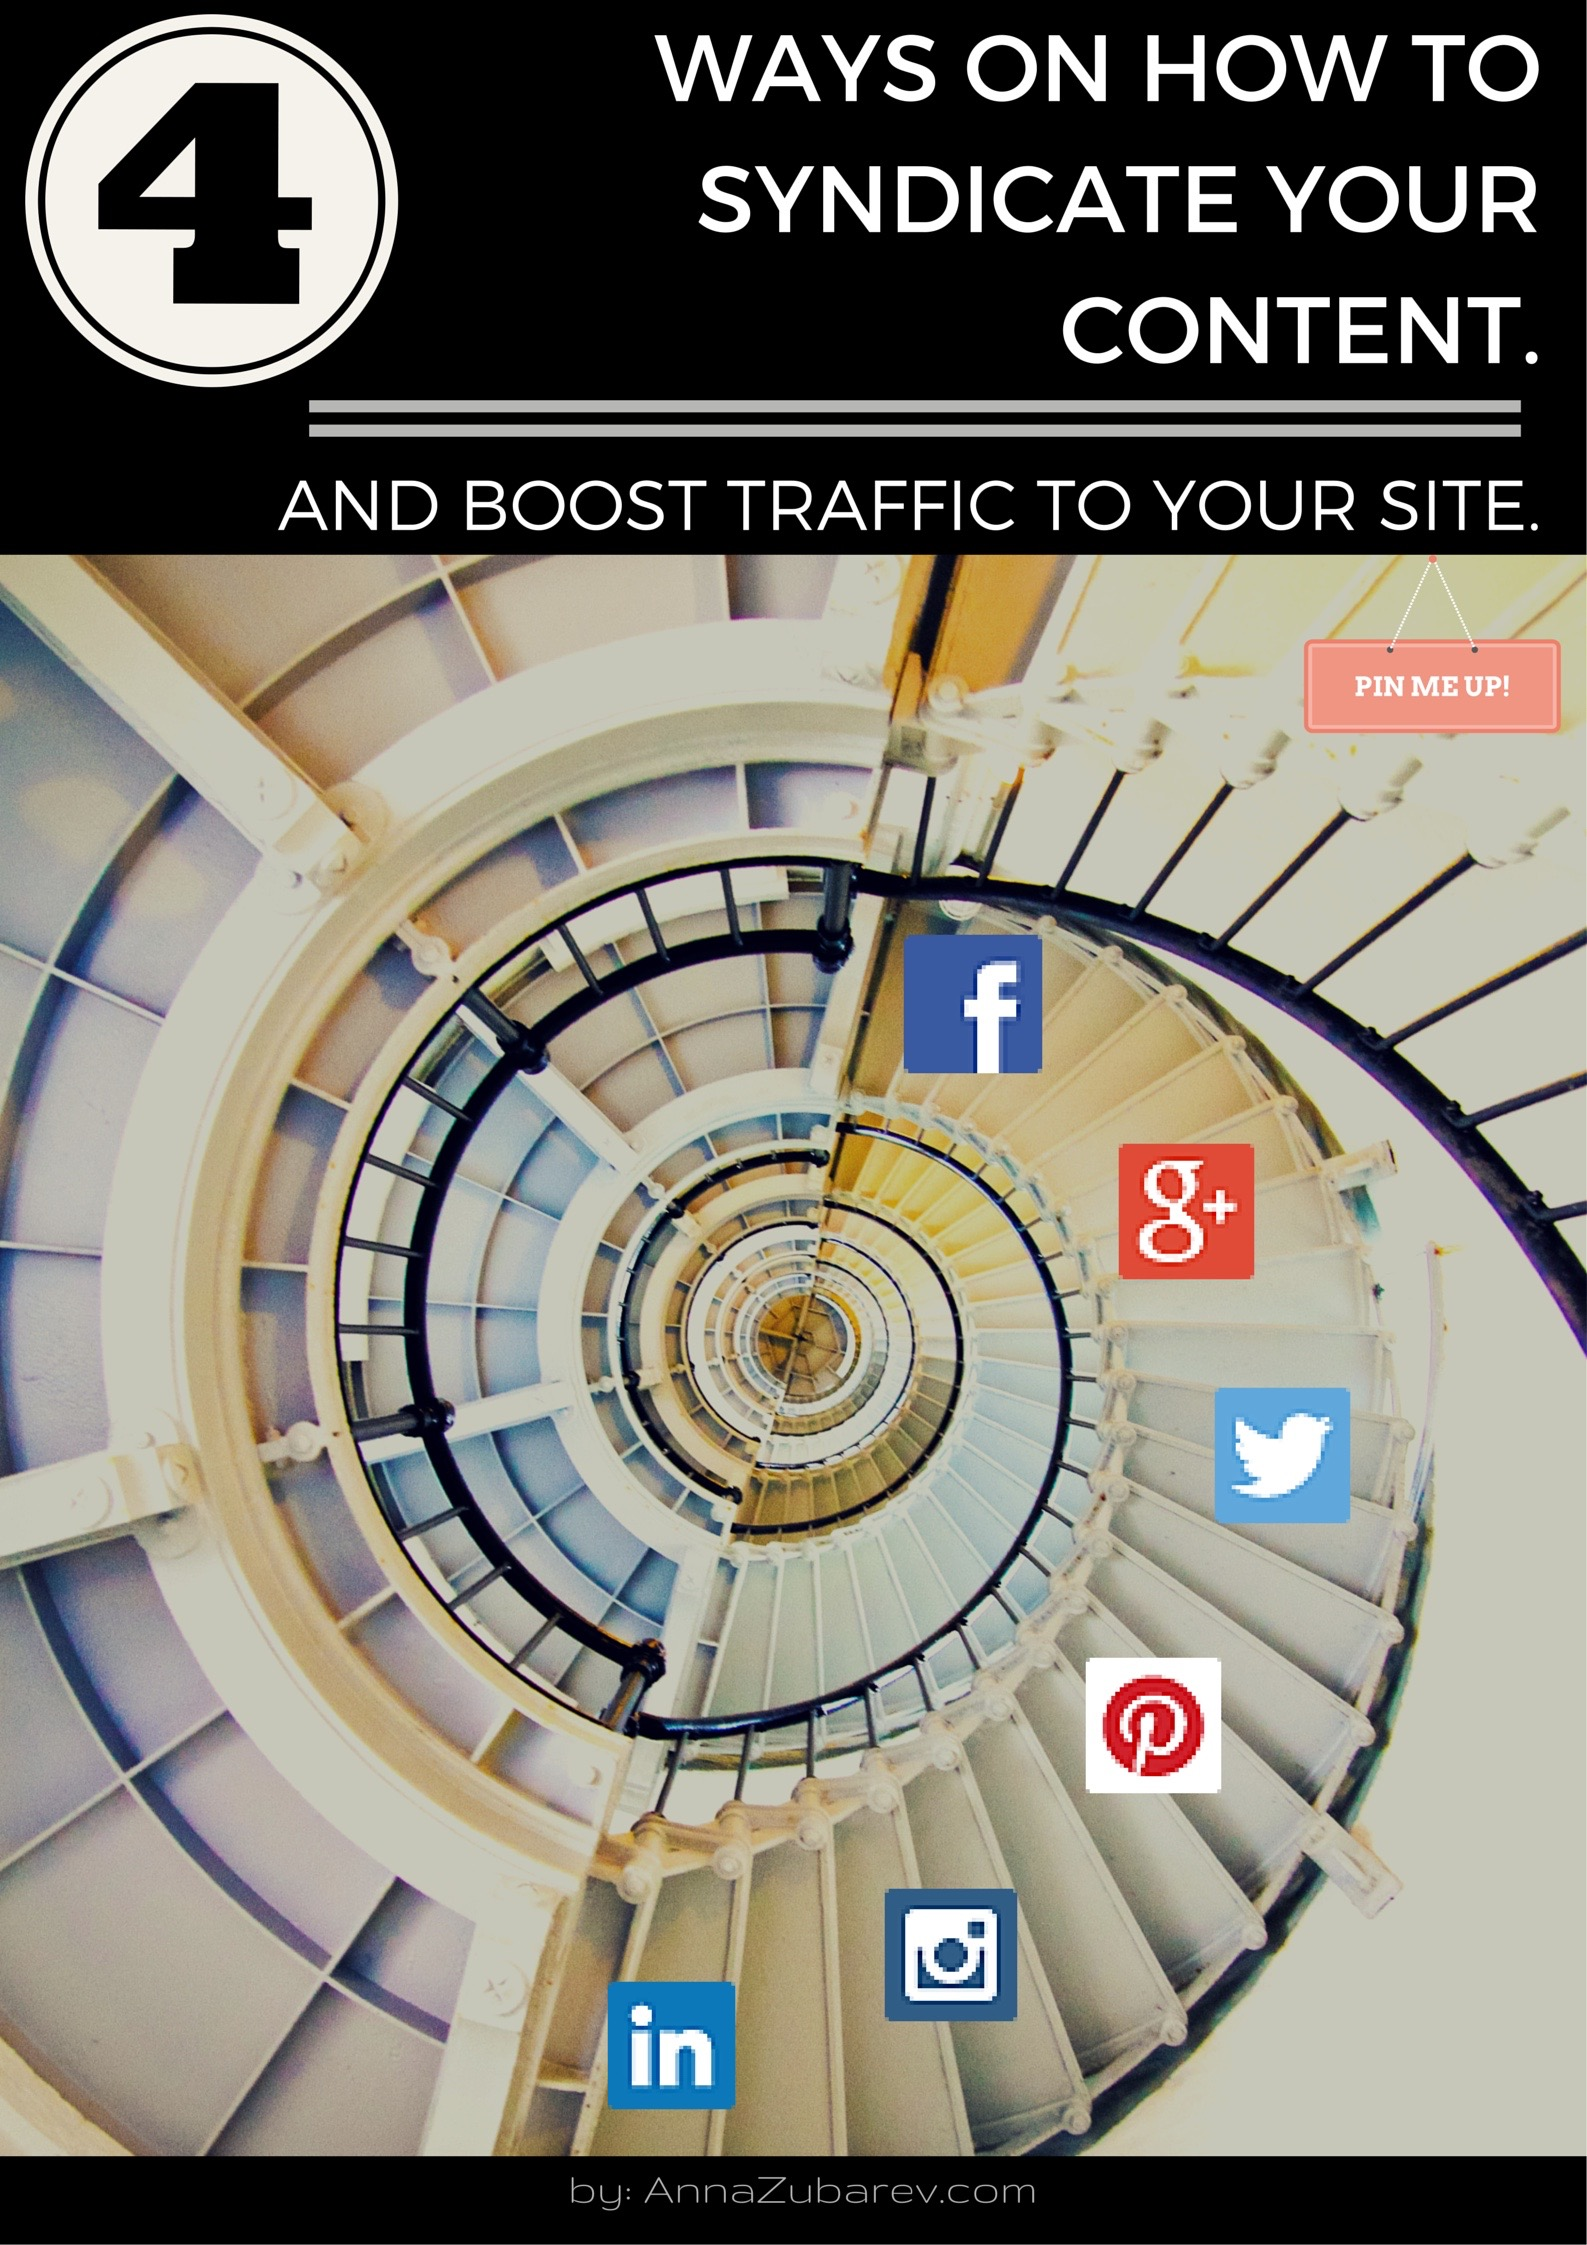 Ways on How to Syndicate Your Content and Boost Traffic to Your Site. #ContentMarketing #ContentStrategy #socialmediastrategy